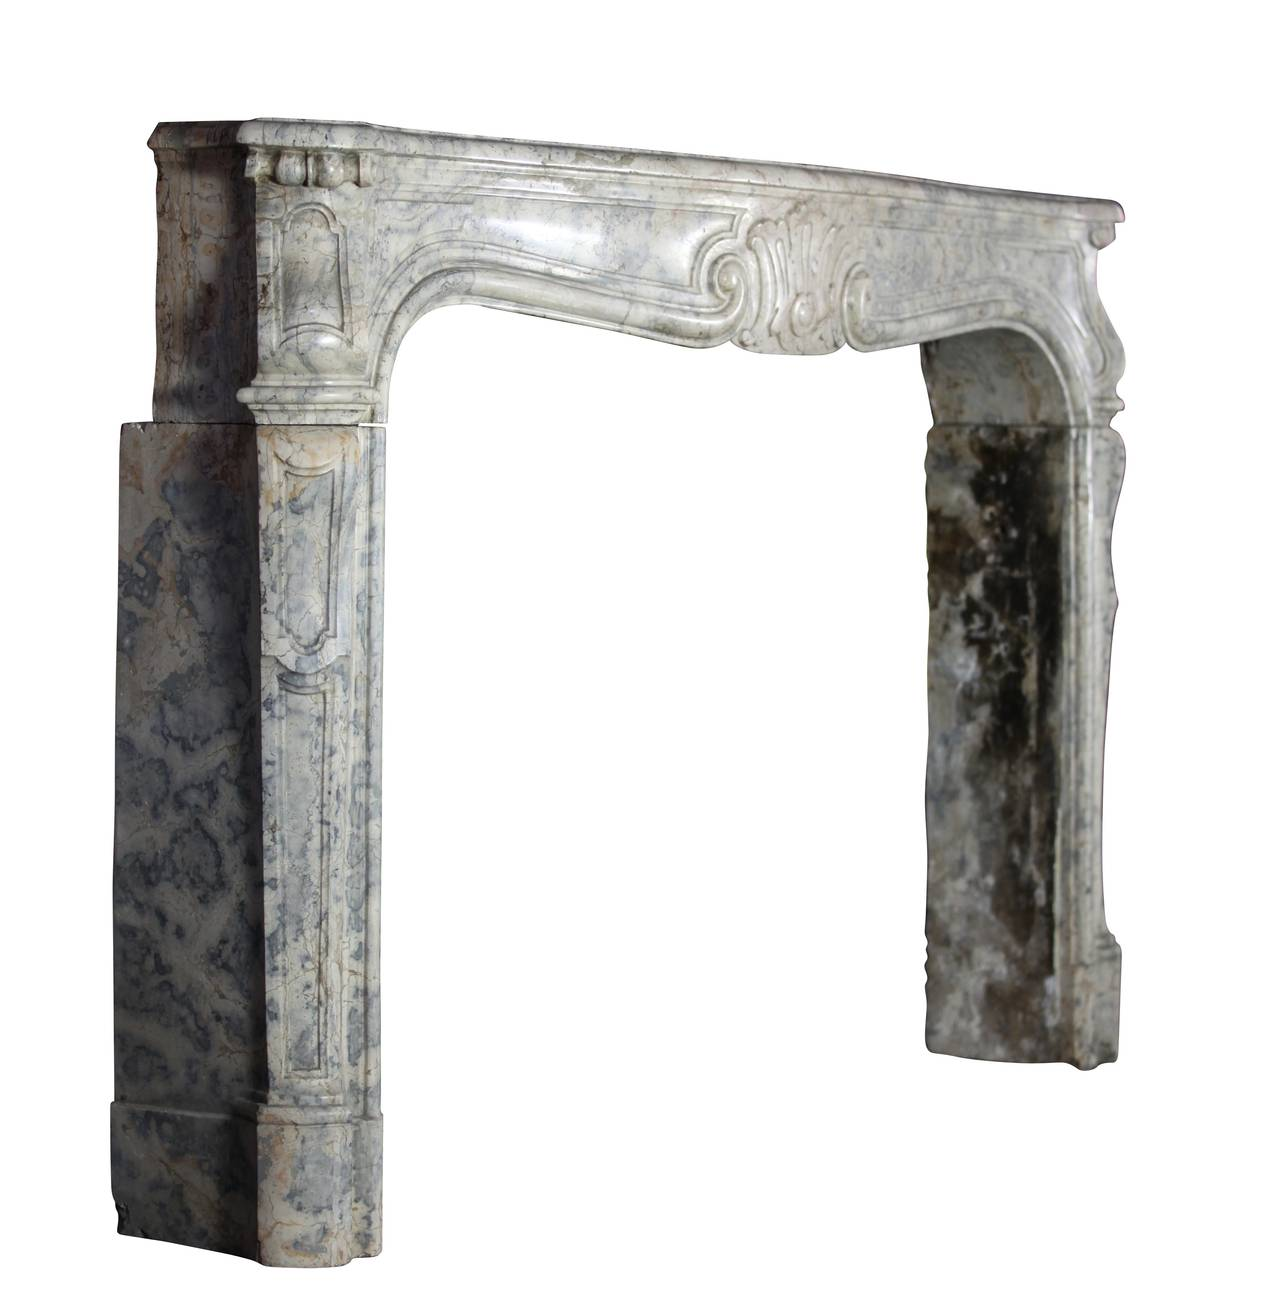 18th Century Unique Hardstone Antique Fireplace Mantel from the Regency Period For Sale 2